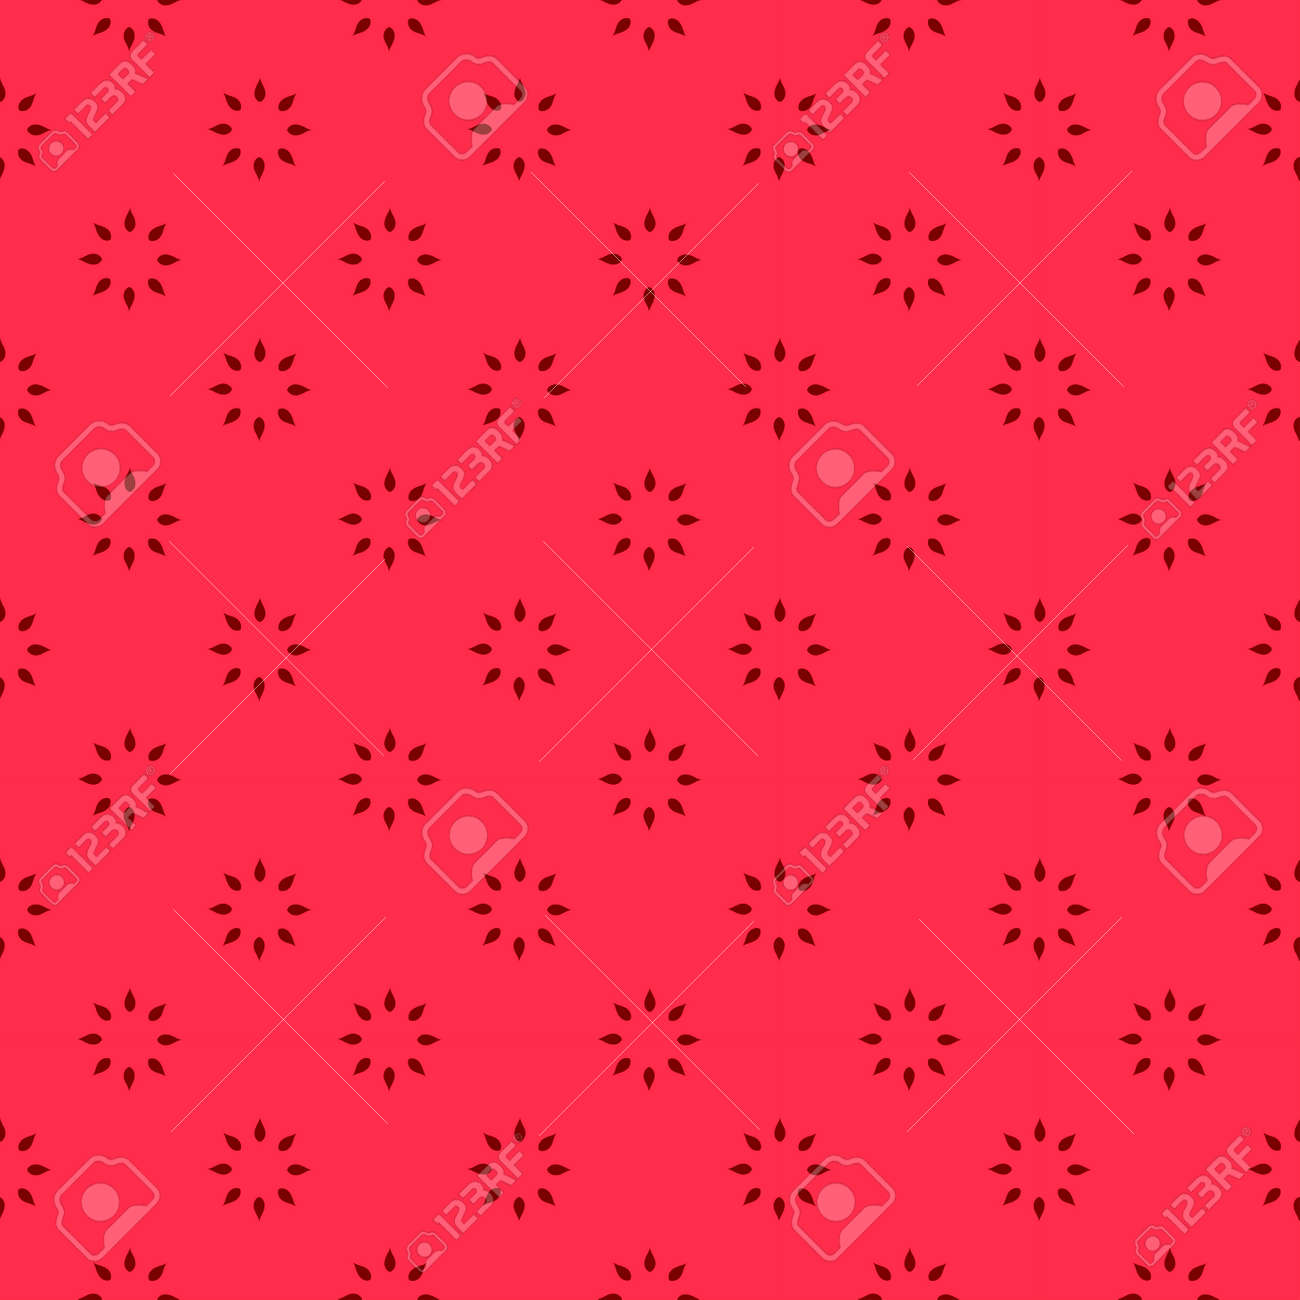 Red Floral Background Fo Wedding Invitation Card Stock Photo ...